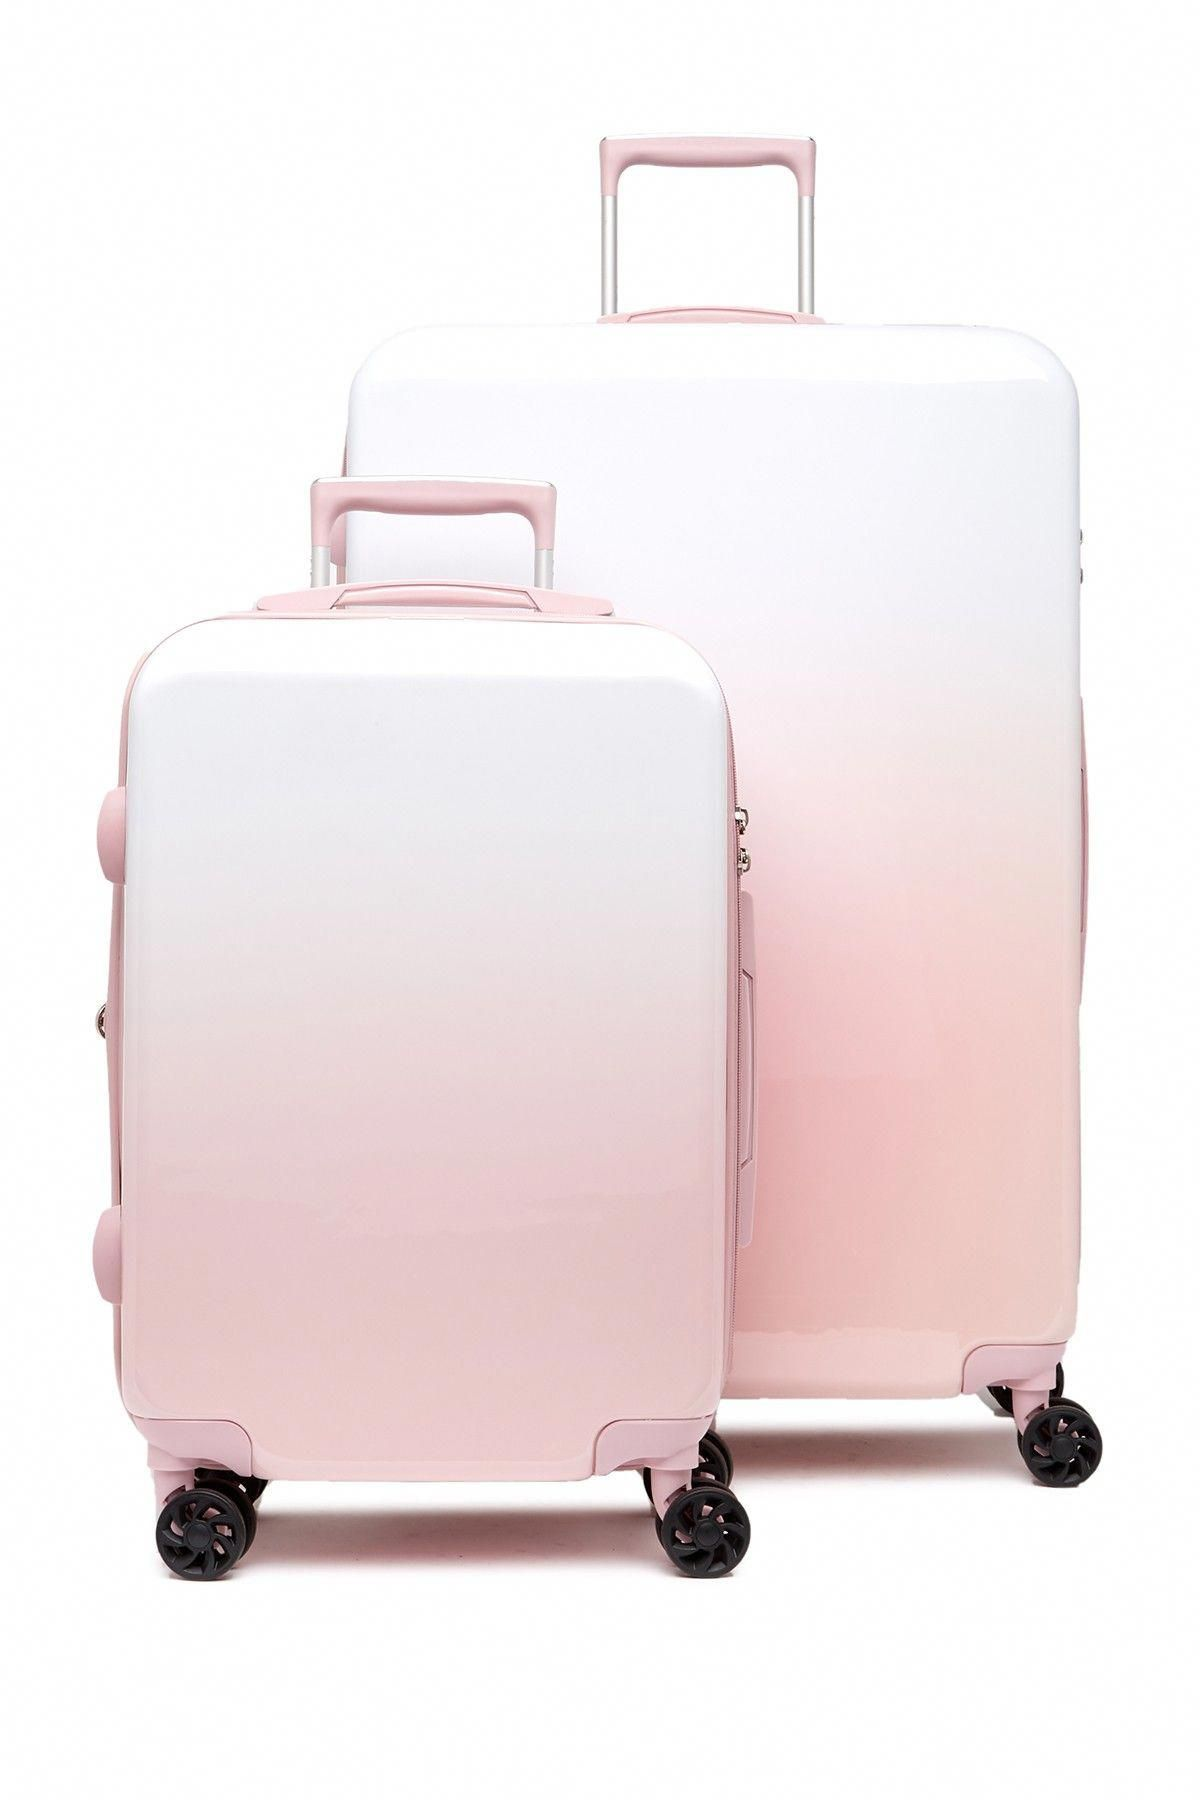 white carry on luggage #Carry-onLuggageTips